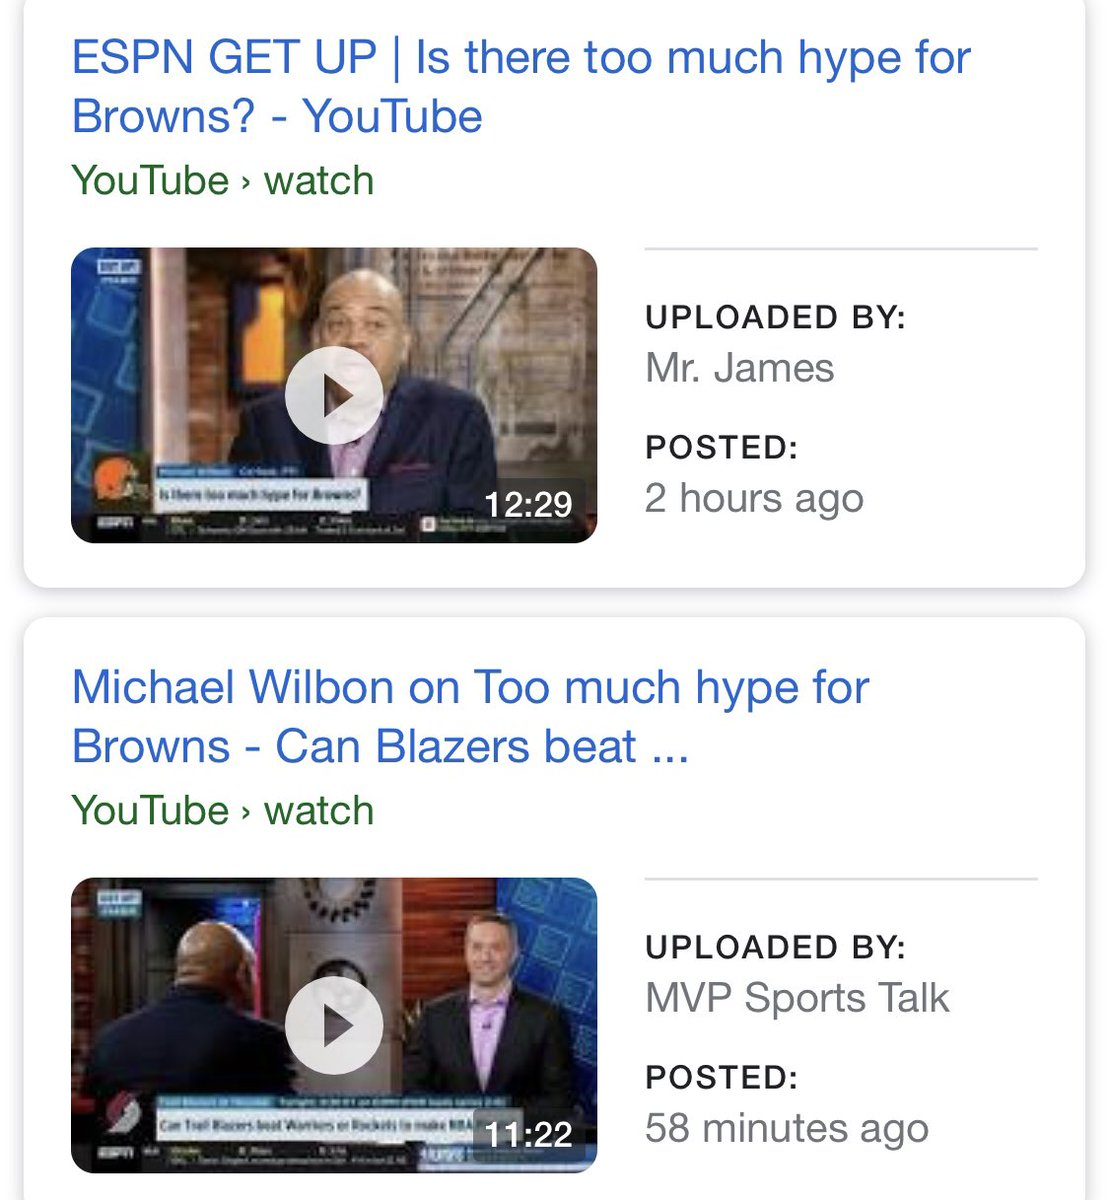 "#Browns org/players keep saying have to prove it on the field. Local fans are acting excited but cautious. National media like @espn and @FOXSports are inflating the hype. Same outlets now are discussing ""Too Much Hype"". Look in a mirror, you are the ones creating the narrative!"